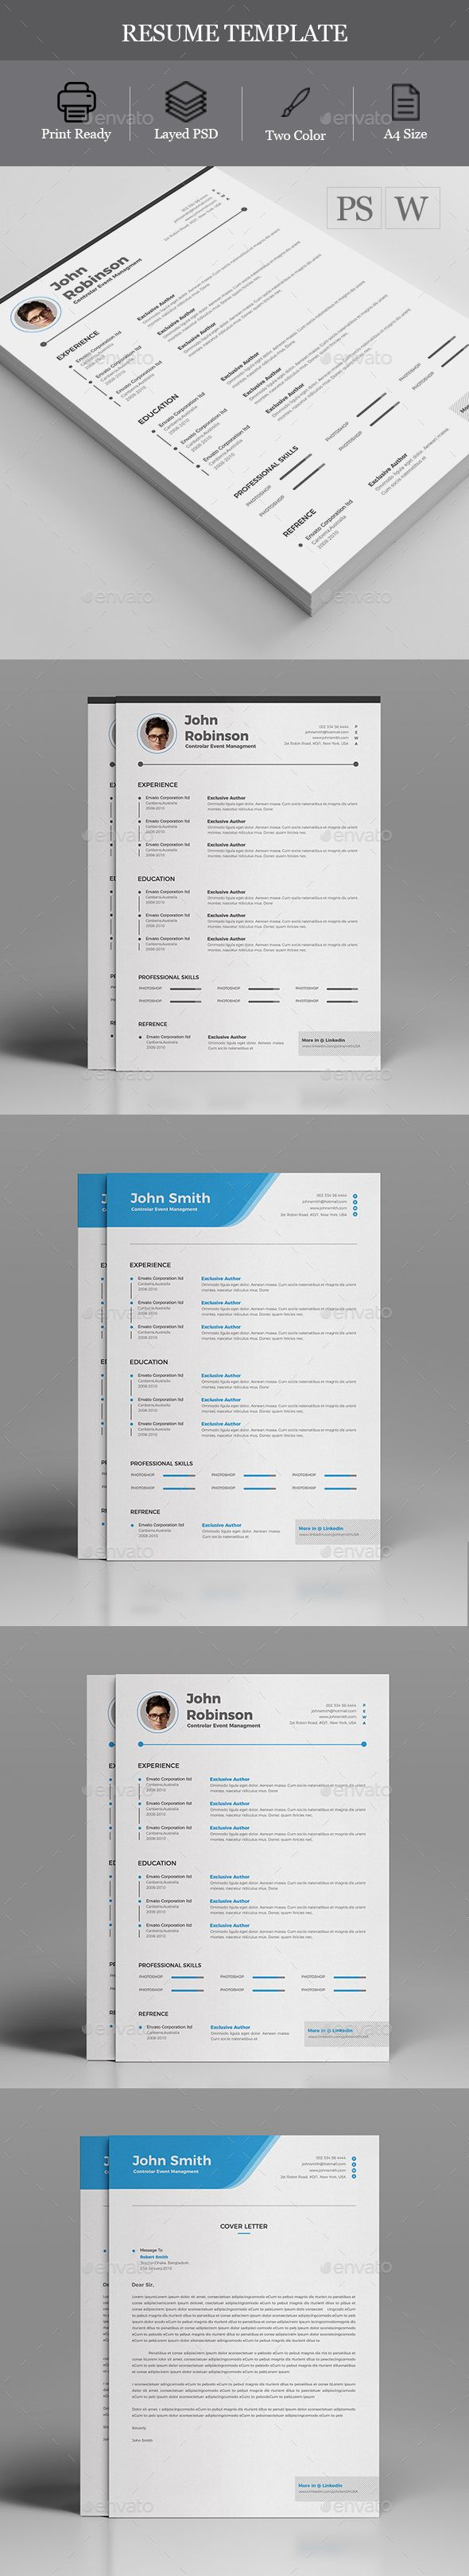 Resume - #Resumes Stationery Download here: https://graphicriver.net/item/resume/19744528?ref=alena994